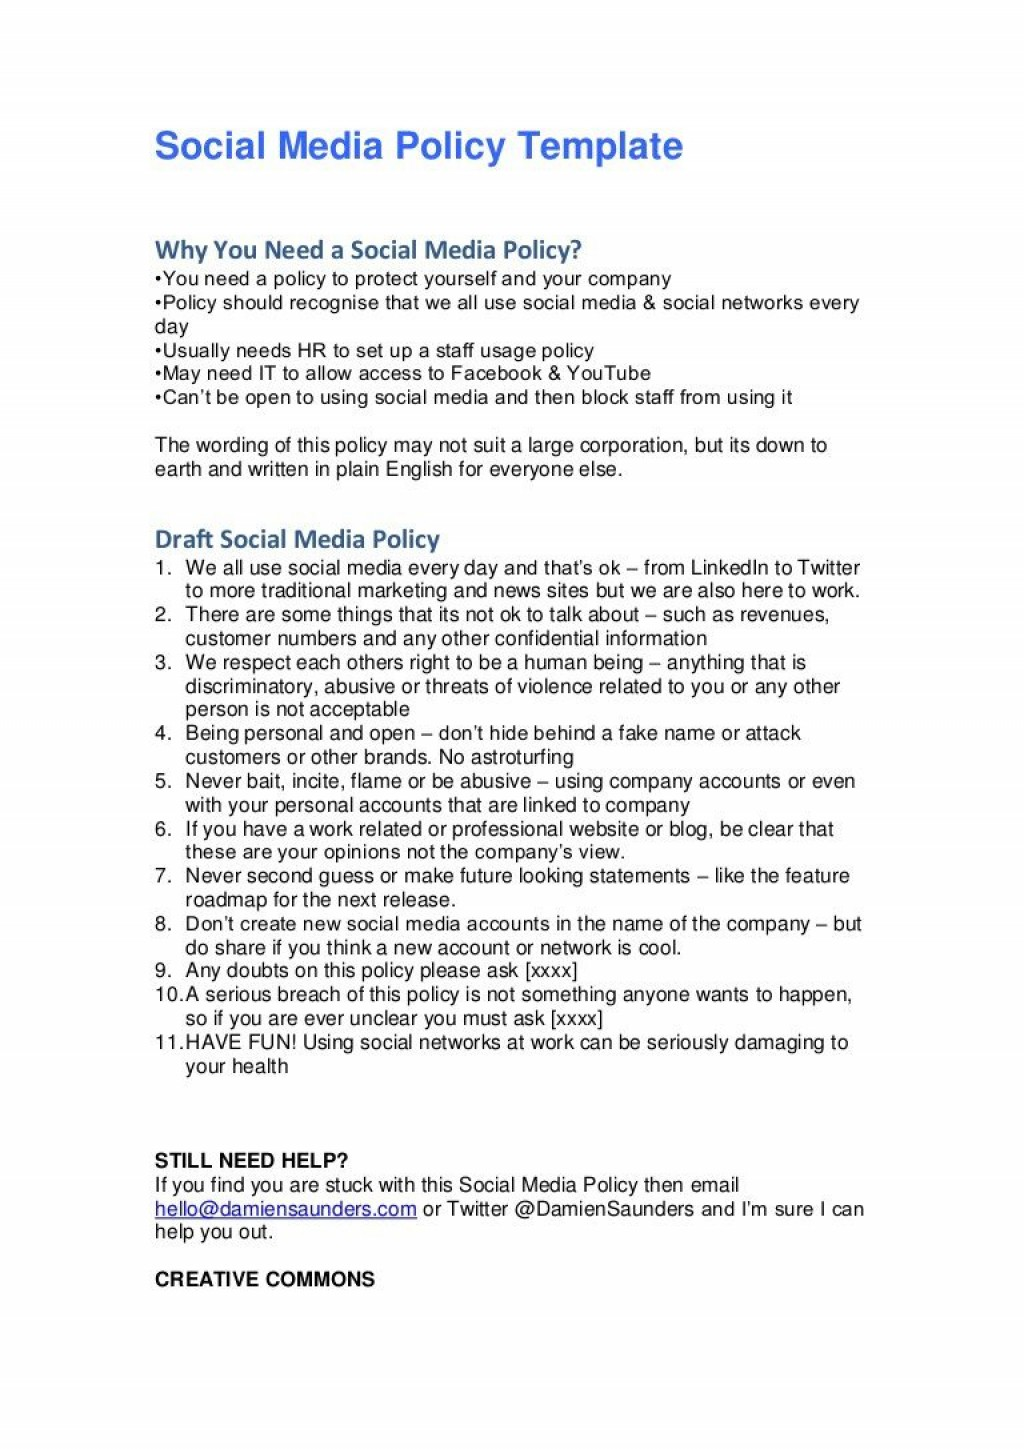 008 Simple Social Media Policie Template Example  Policy Australia For Small BusinesLarge